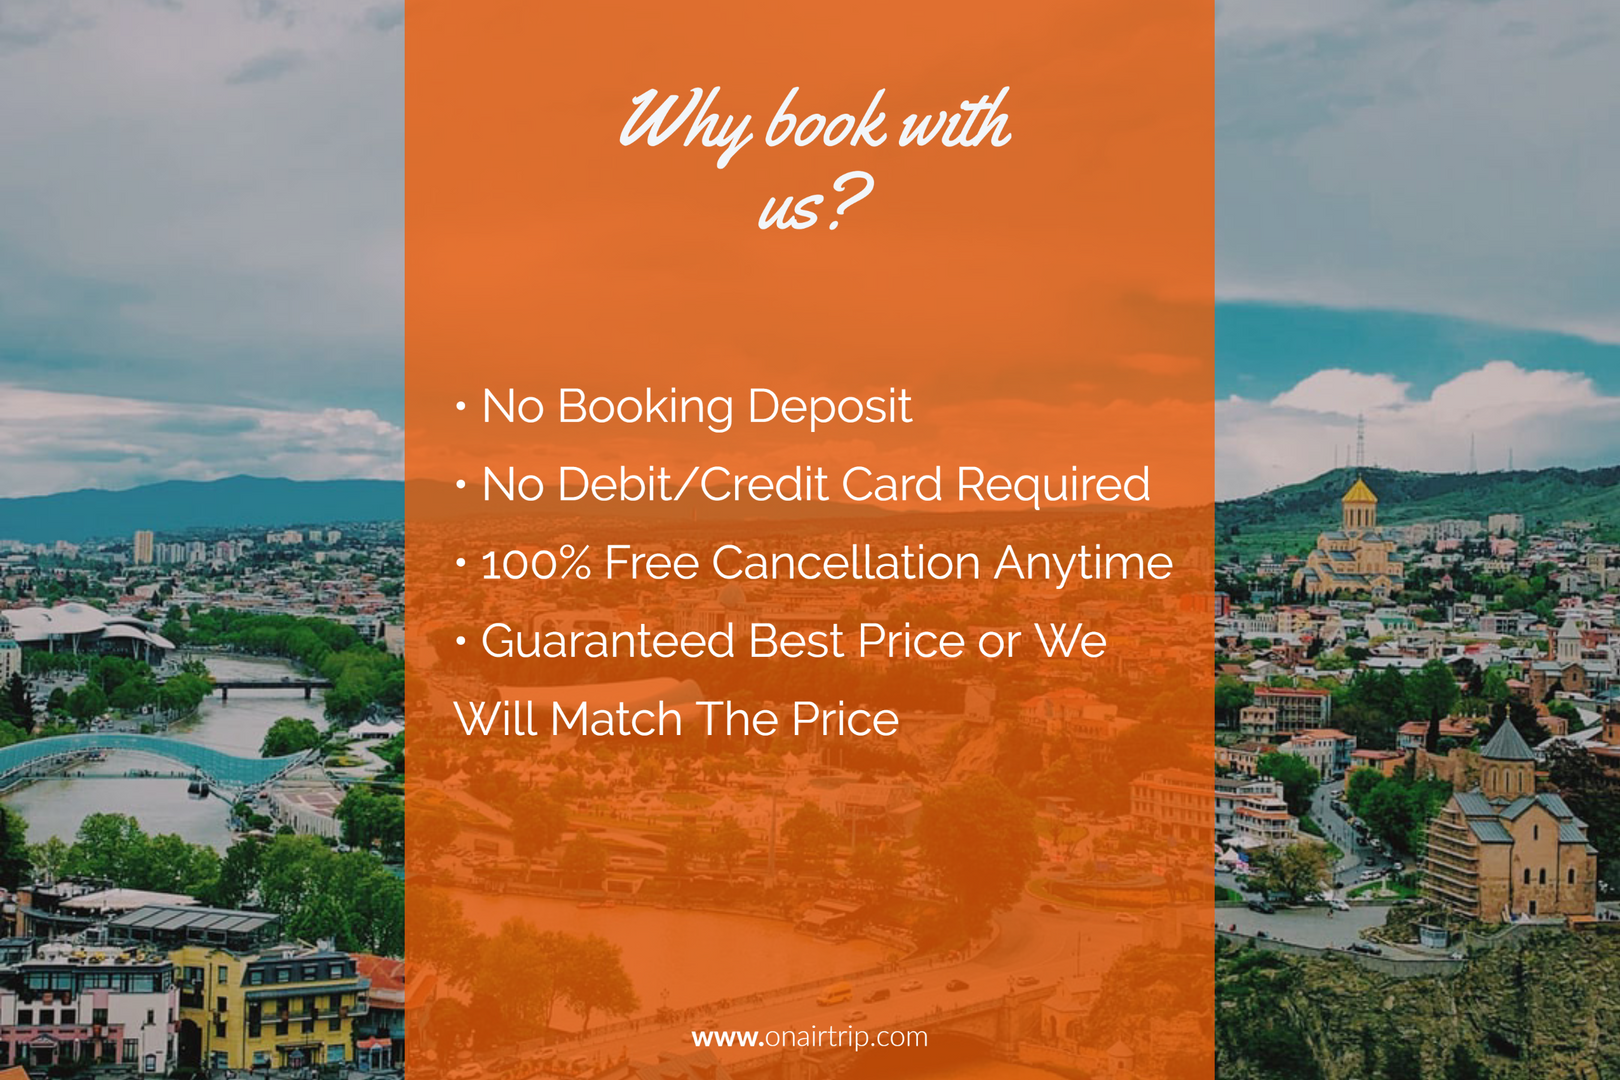 Why Book Holiday With Us